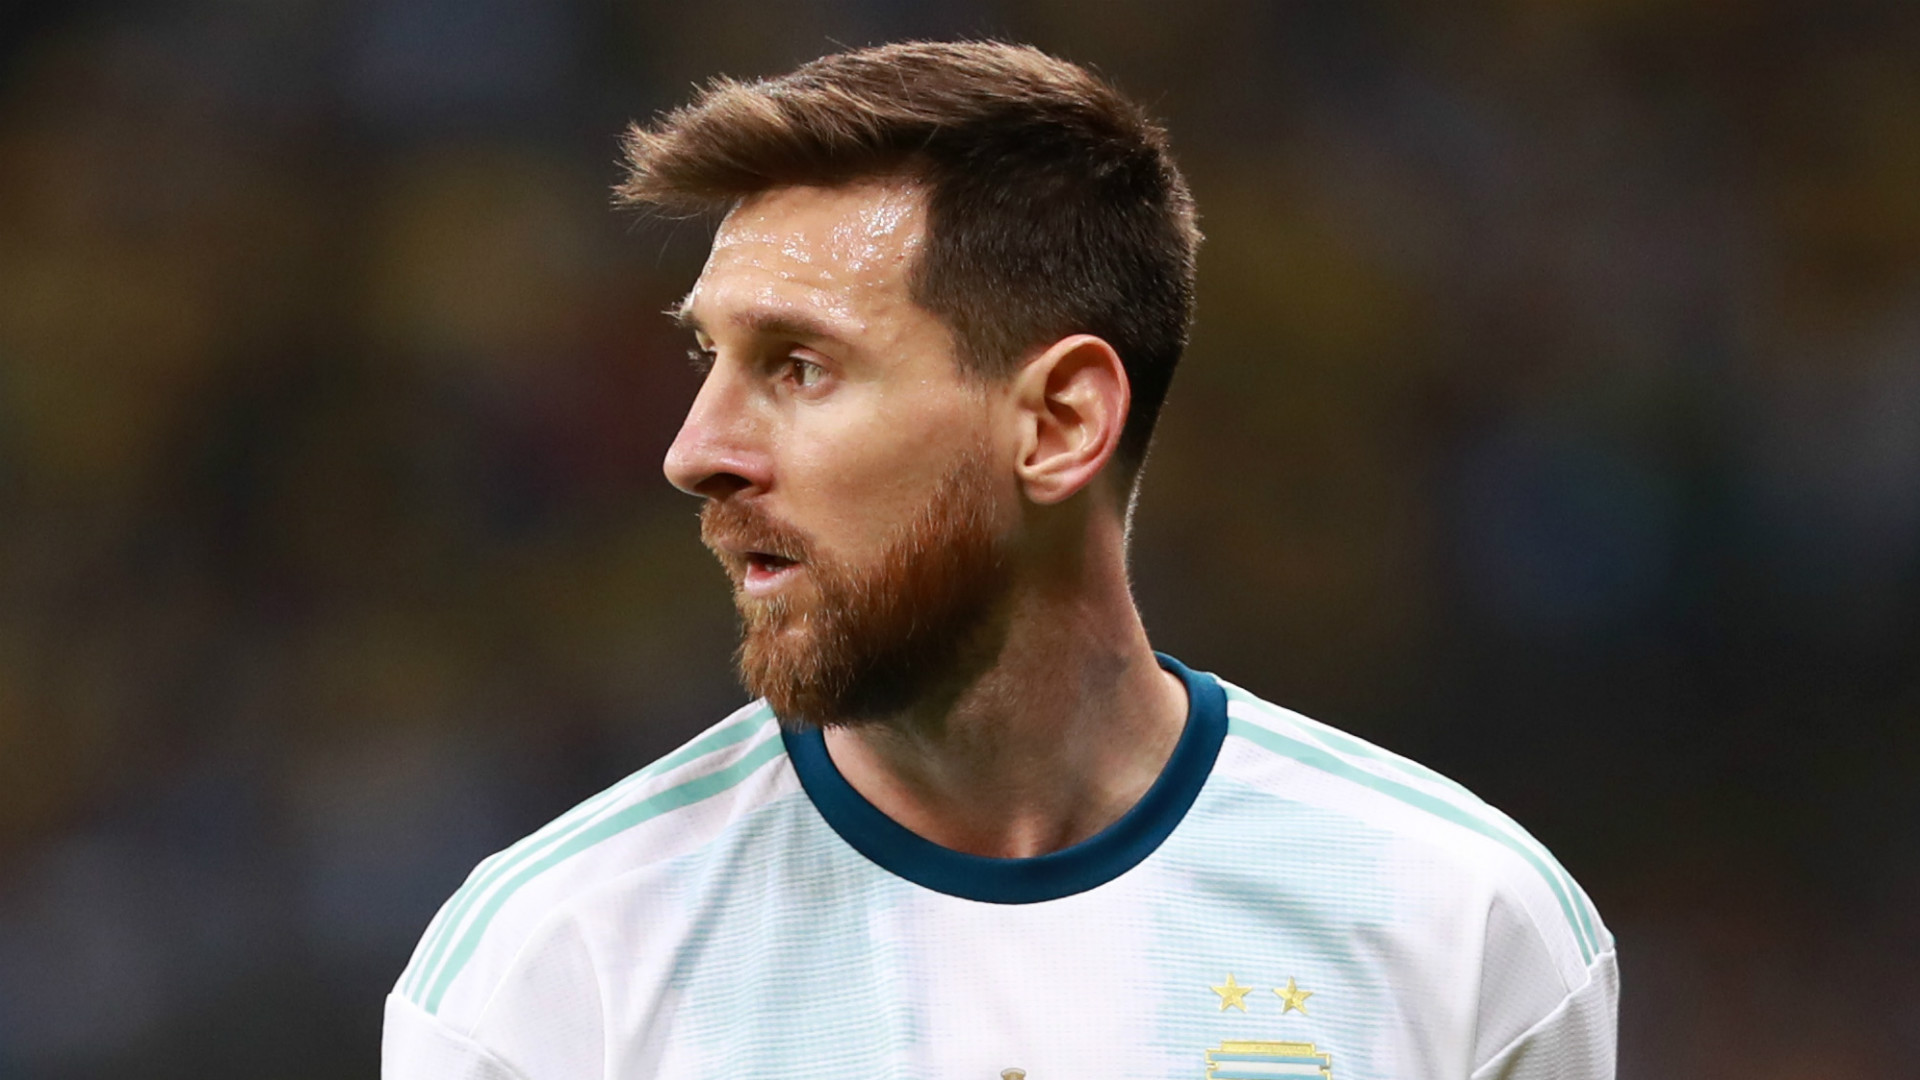 Messi will be back for Argentina next month – Scaloni